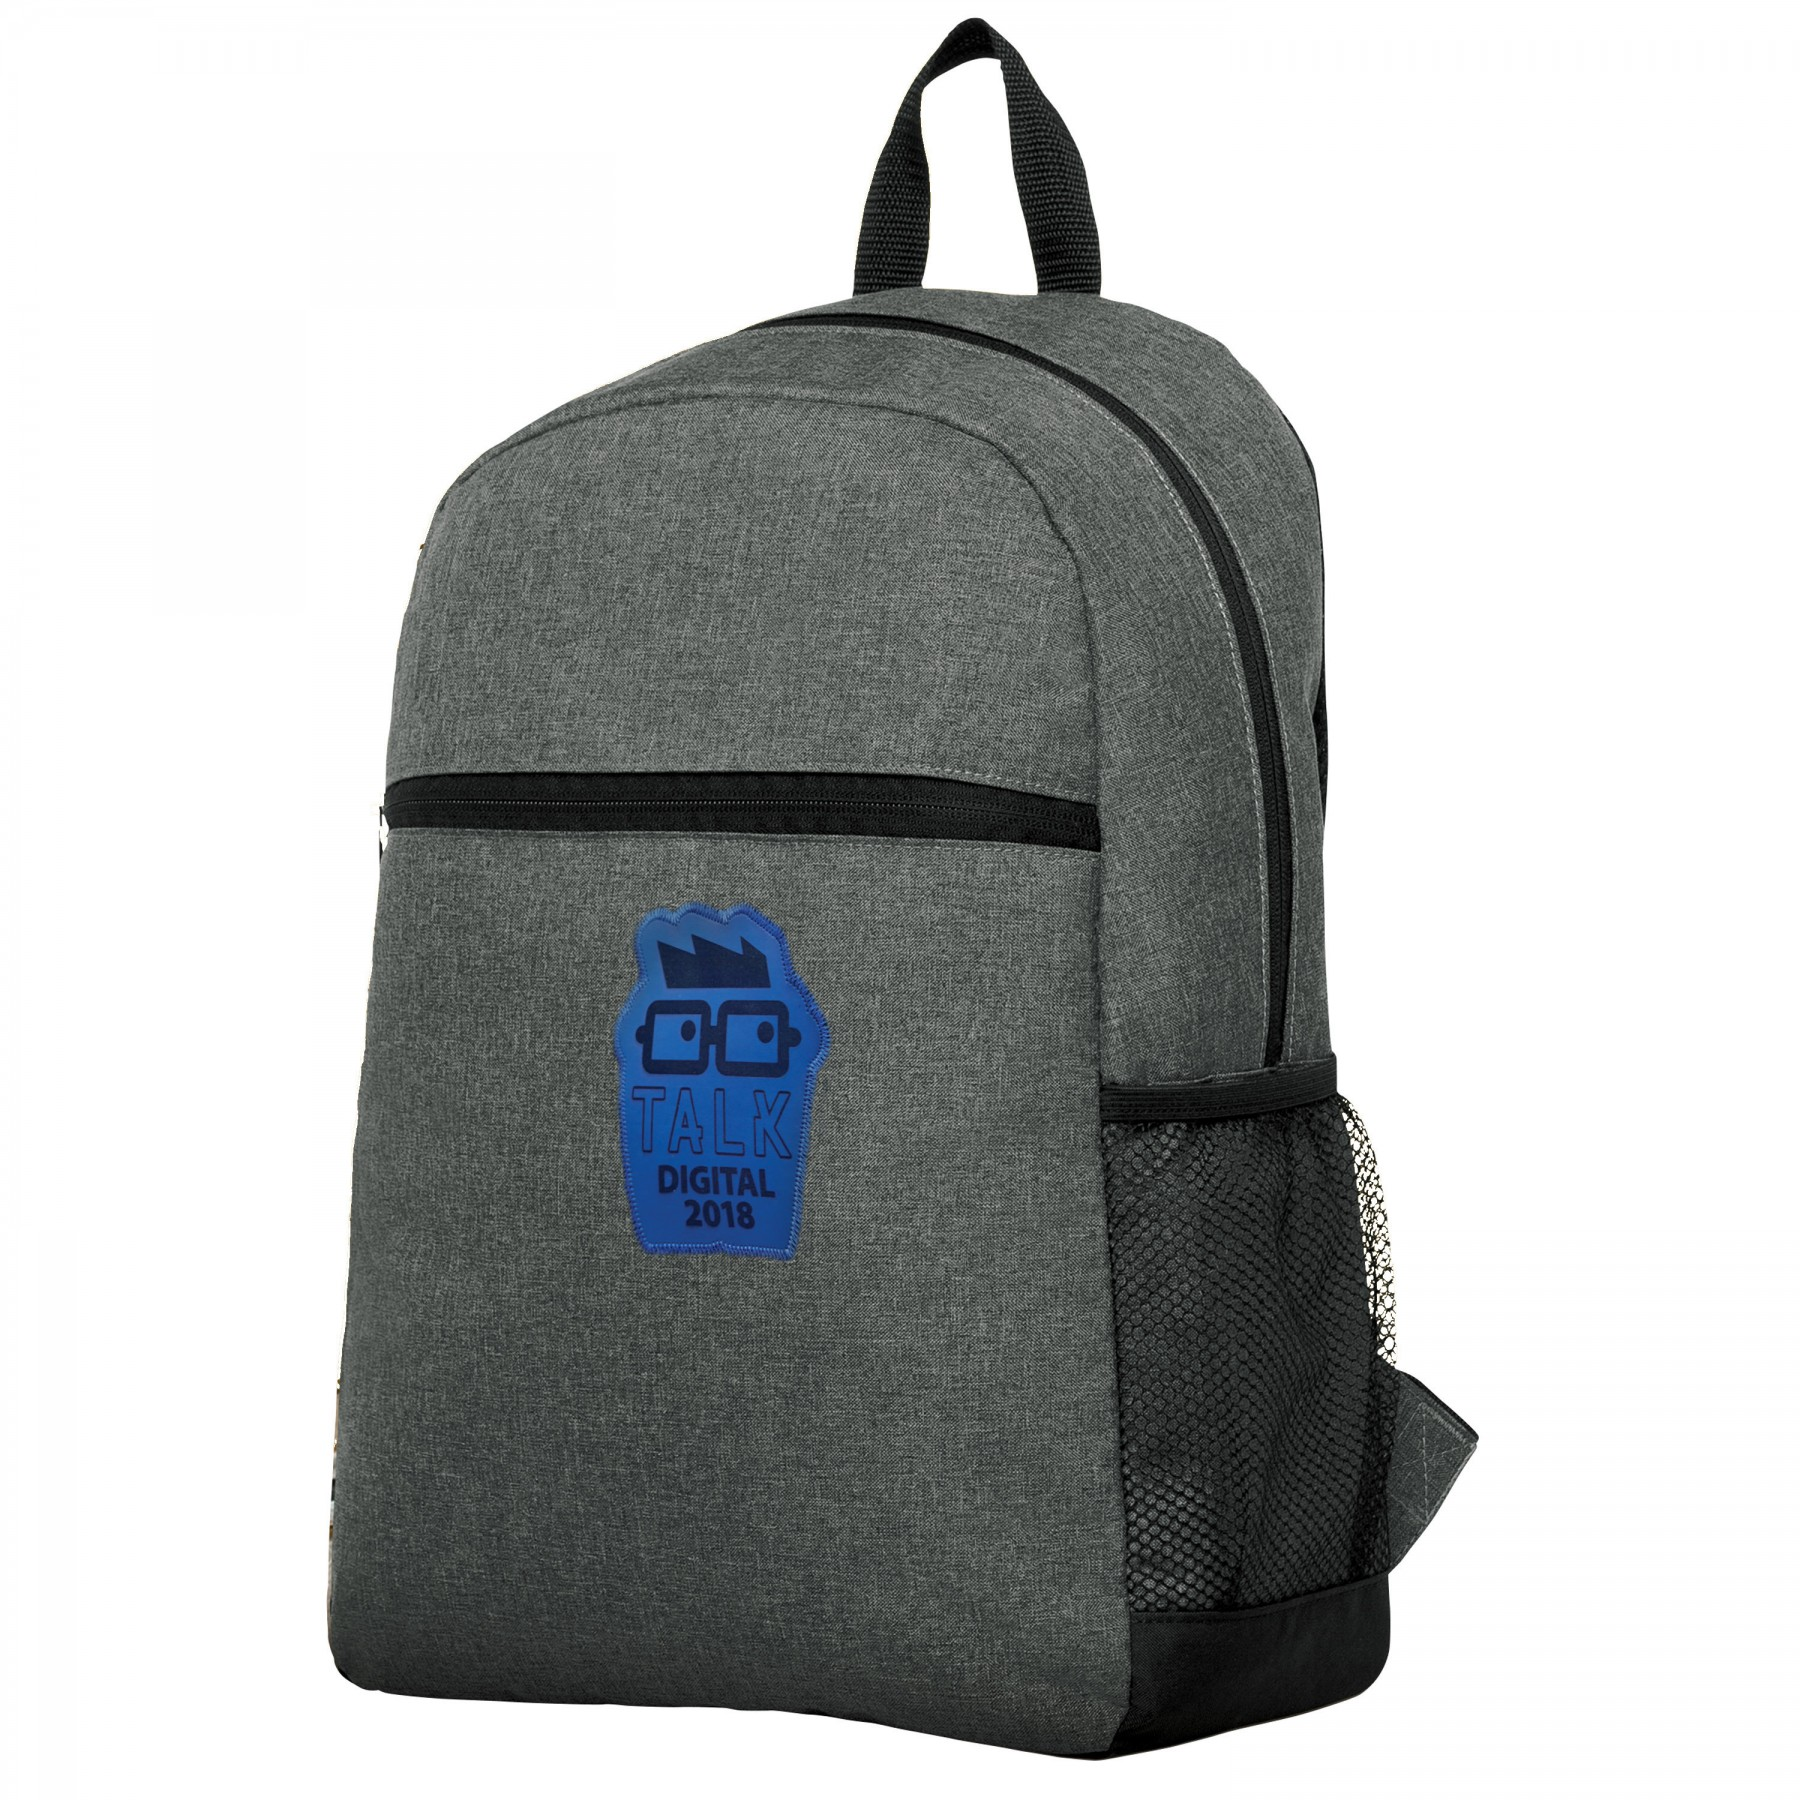 Business Smart Flush-Front Backpack, BG101, One Colour Imprint